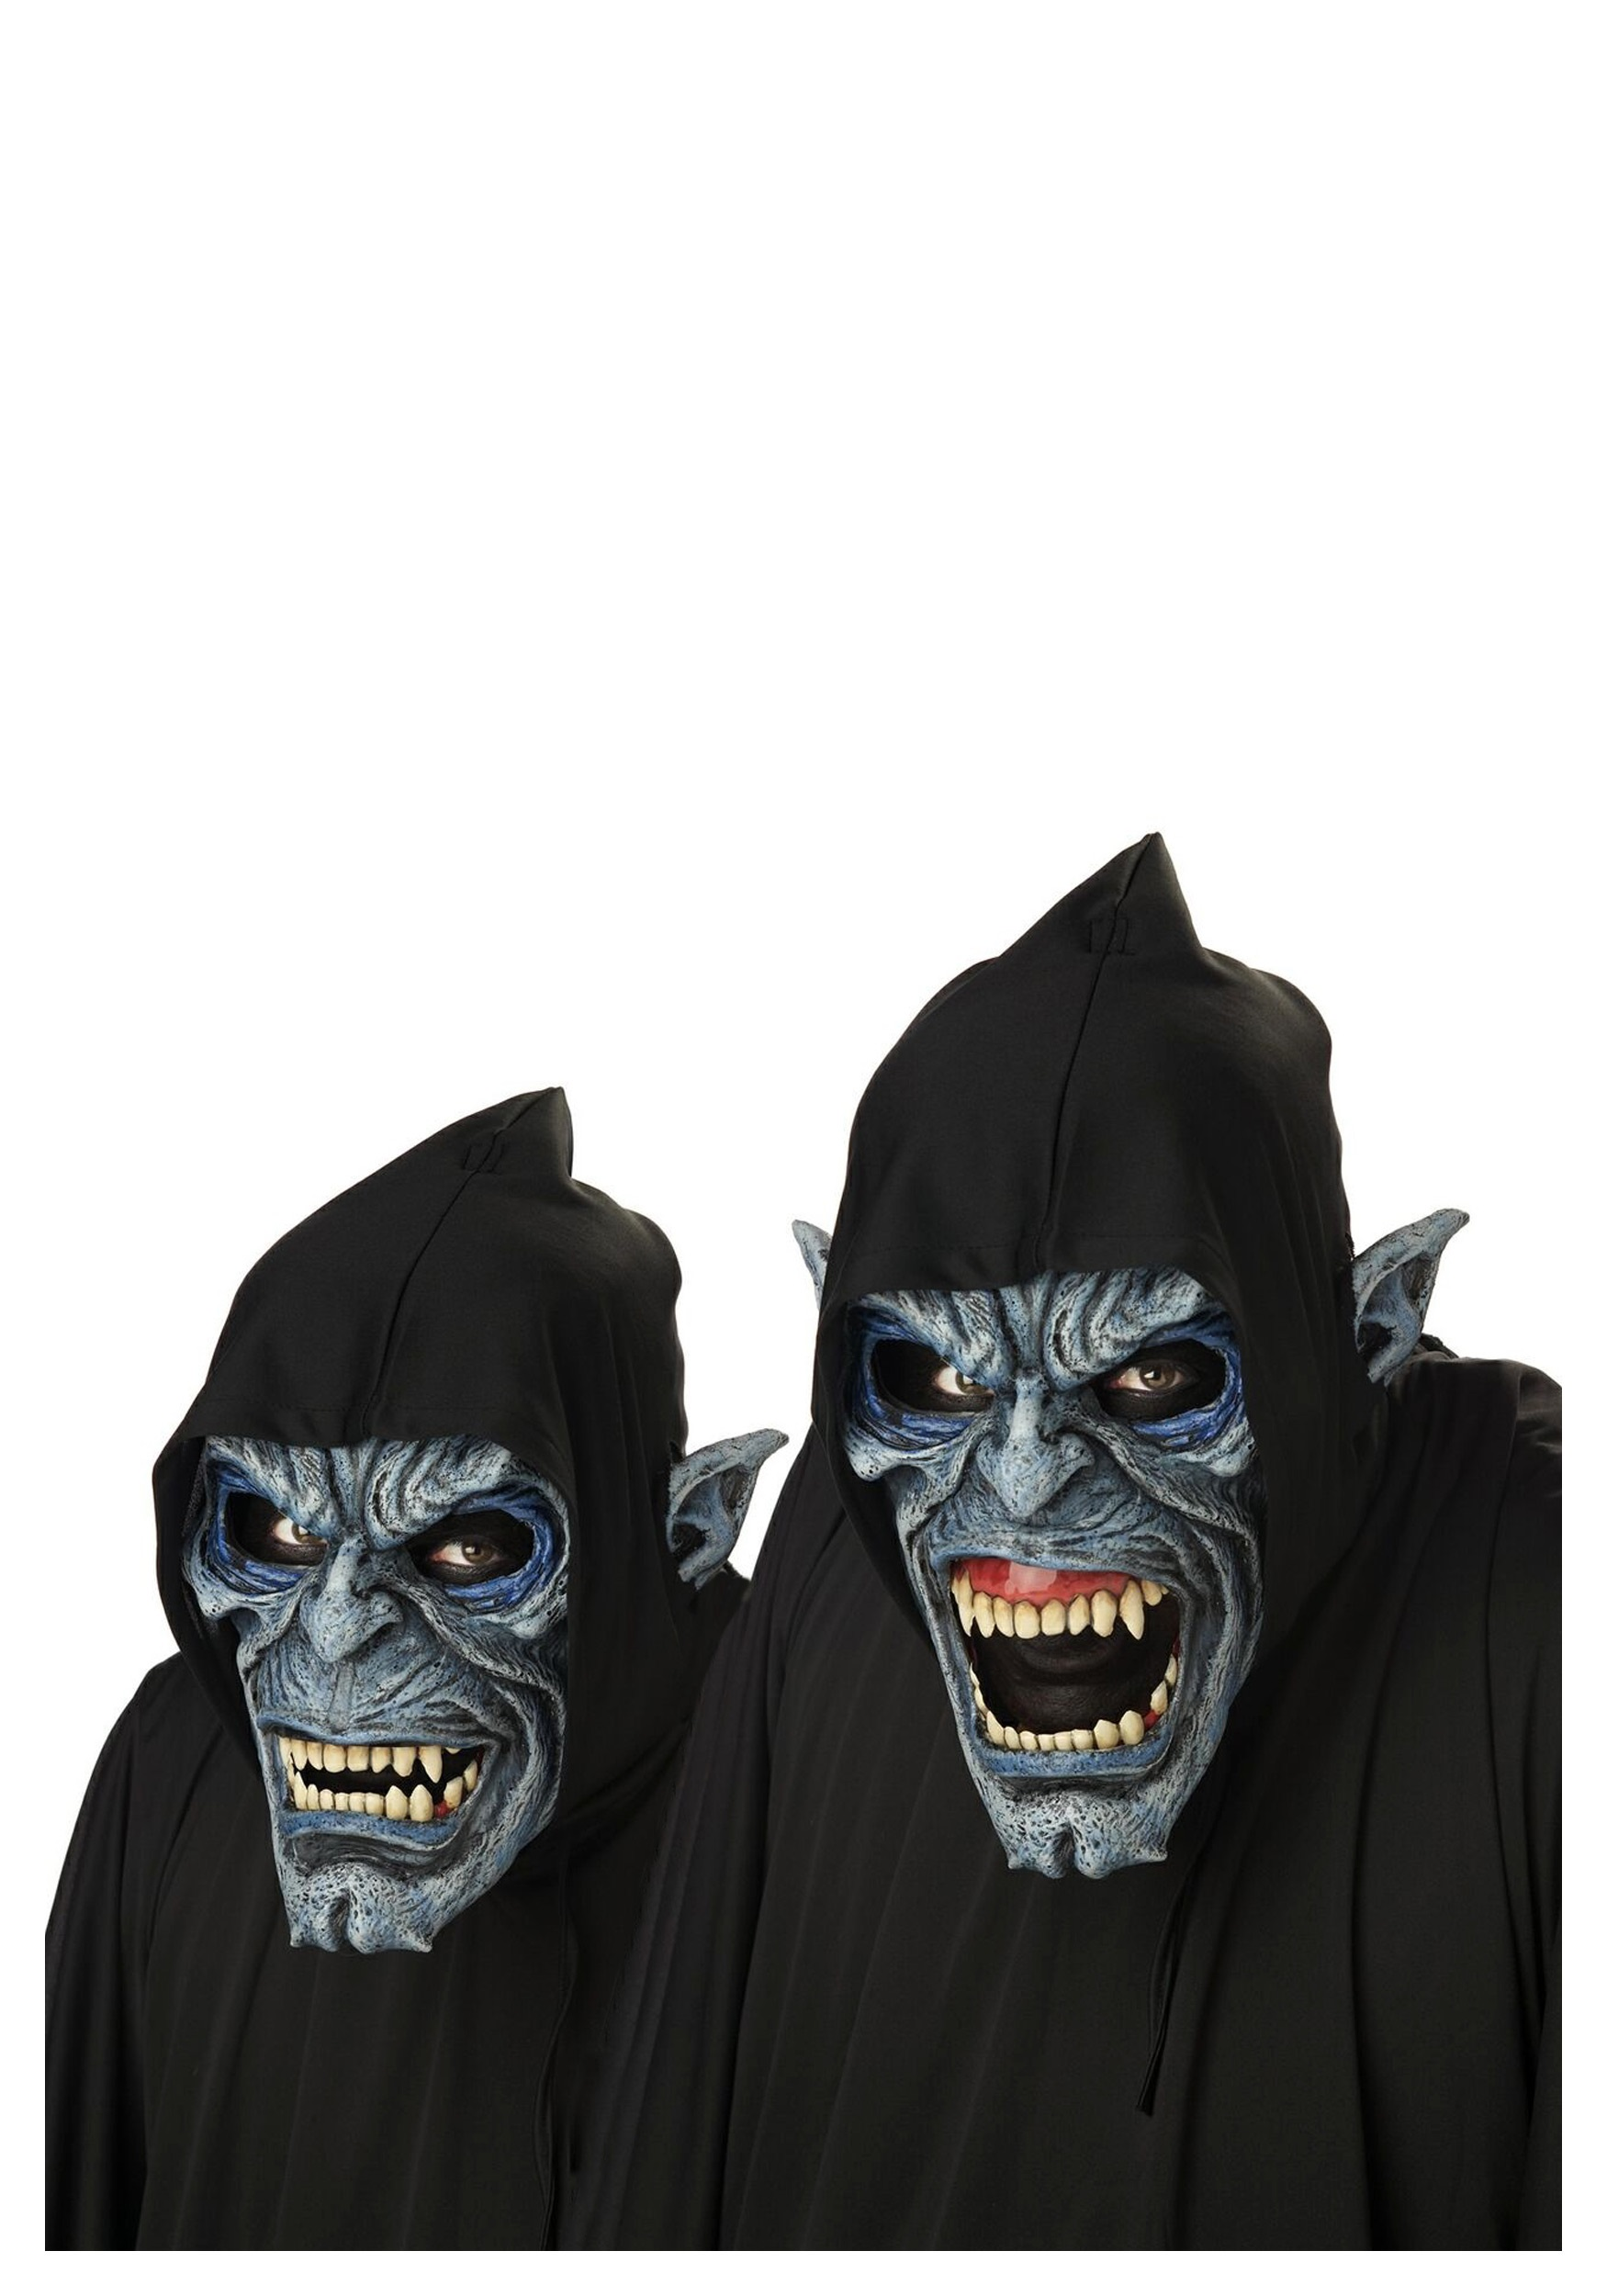 Realistic Scary Halloween Masks.Night Fiend Costume Mask